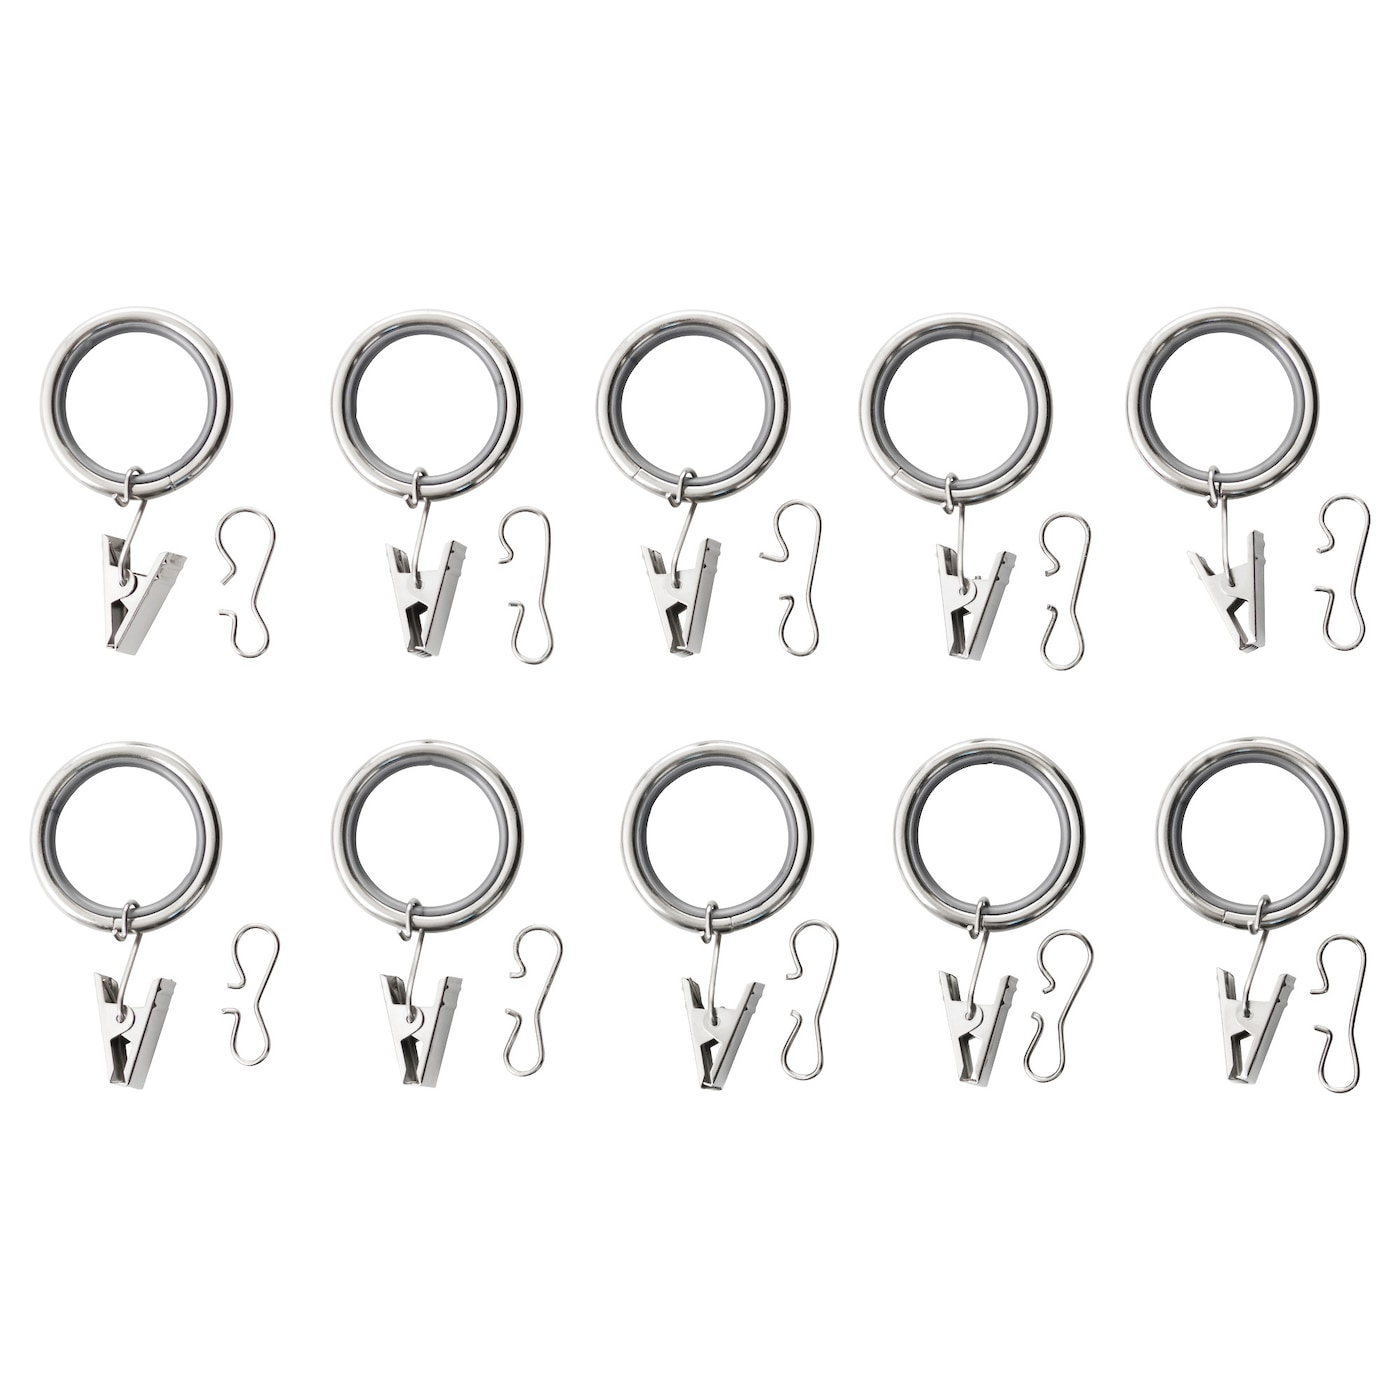 IKEA SYRLIG curtain ring with clip and hook